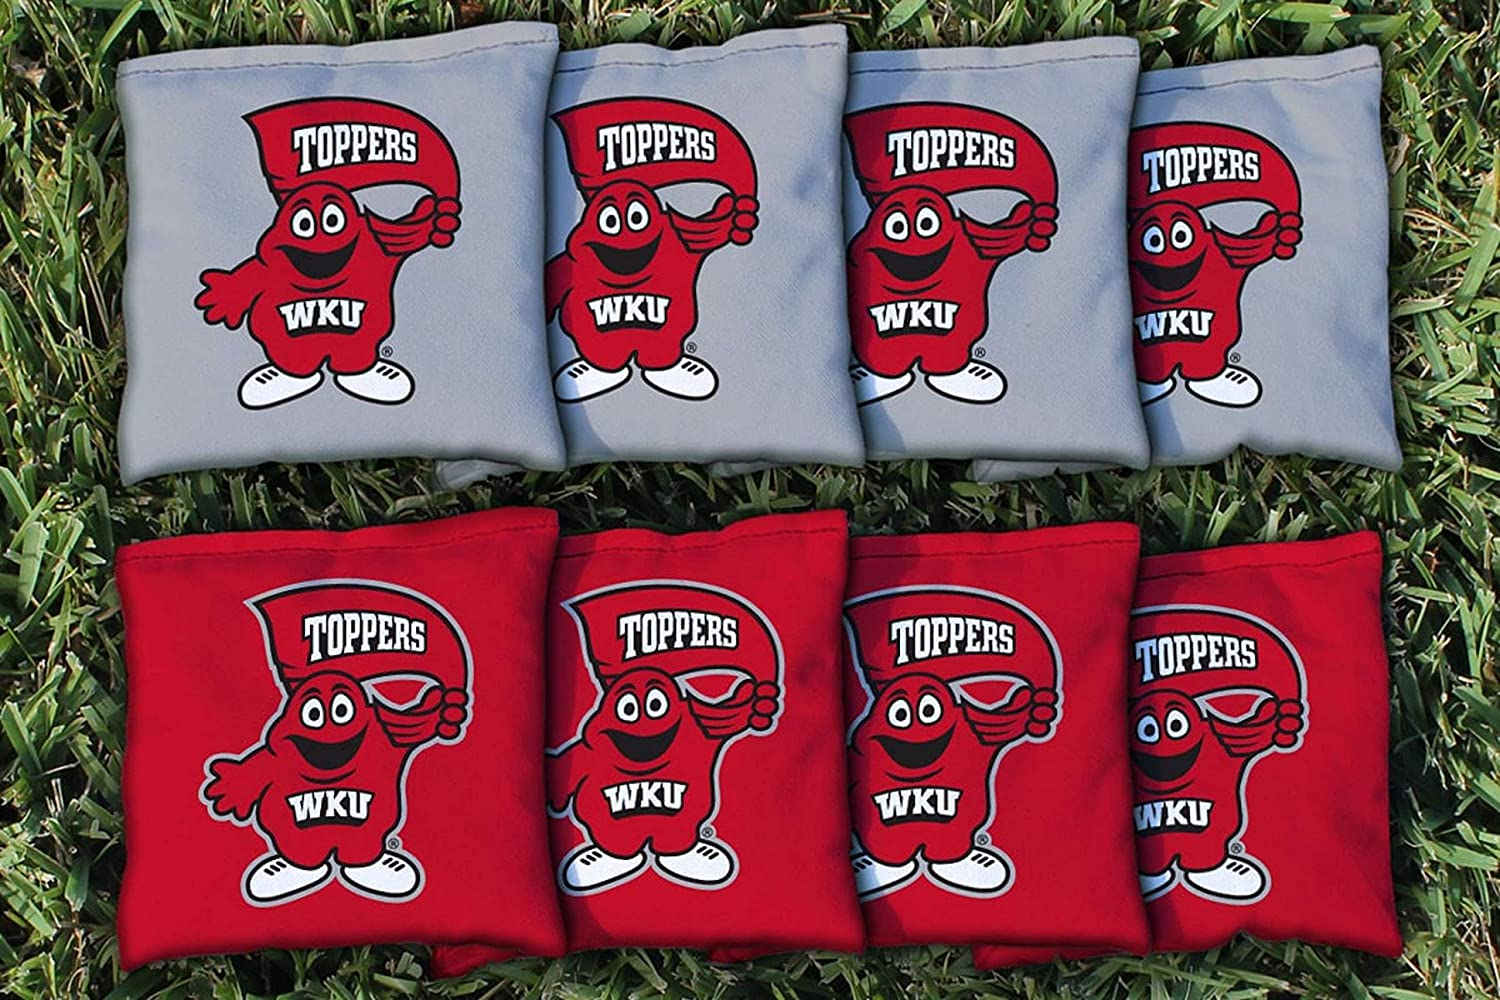 8 Bags Included, Corn-Filled Victory Tailgate NCAA Regulation Cornhole Game Bag Set